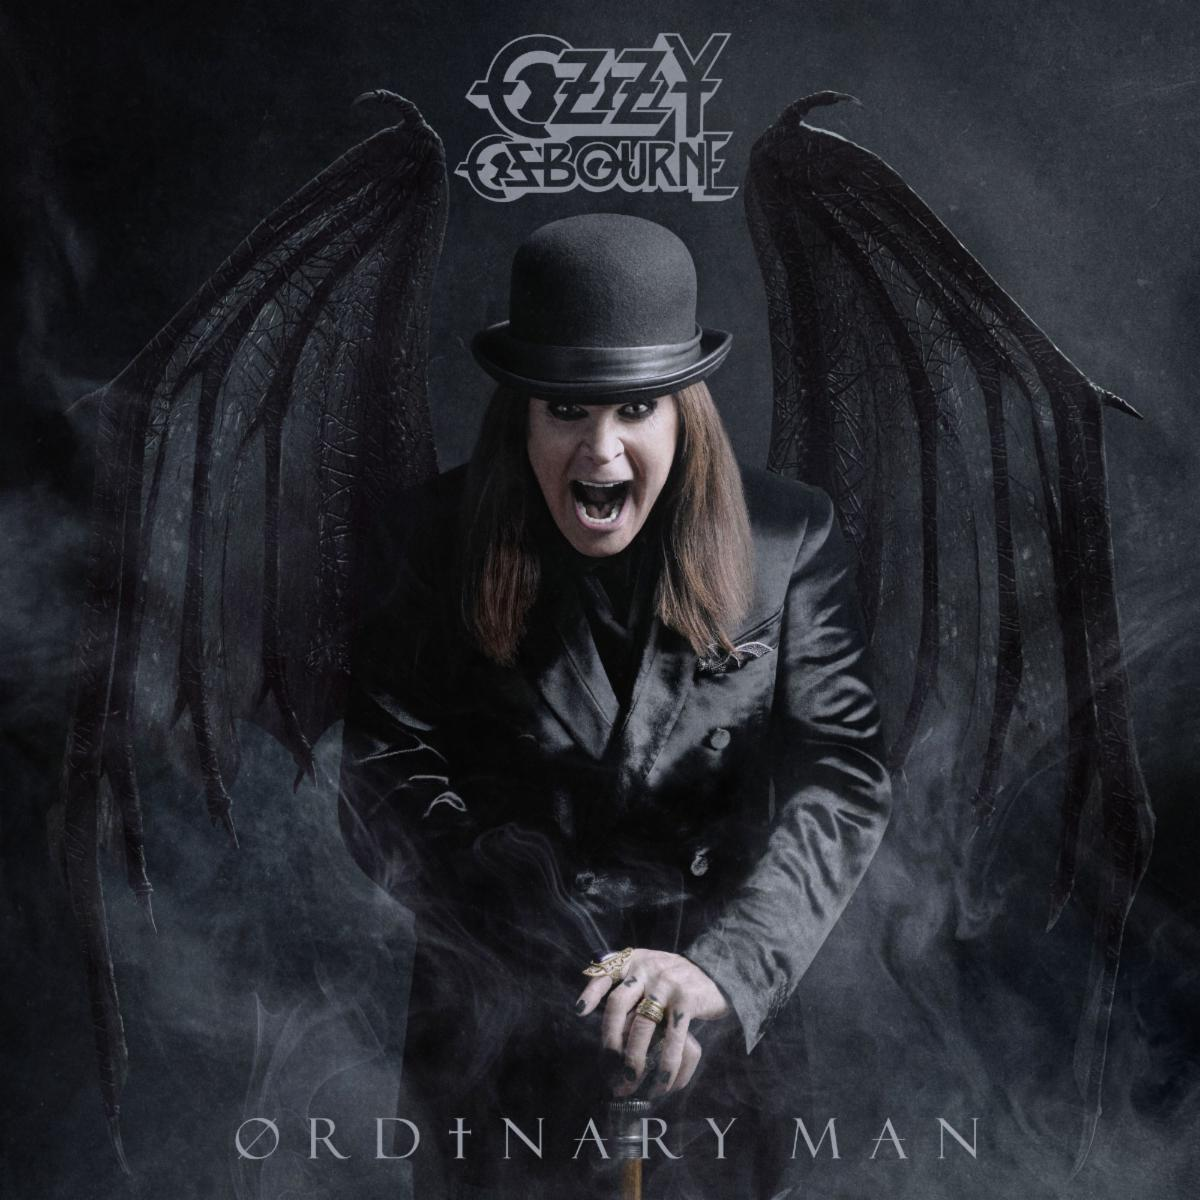 Details Revealed For Ozzy Osbourne's 'Ordinary Man' Due Out February 21